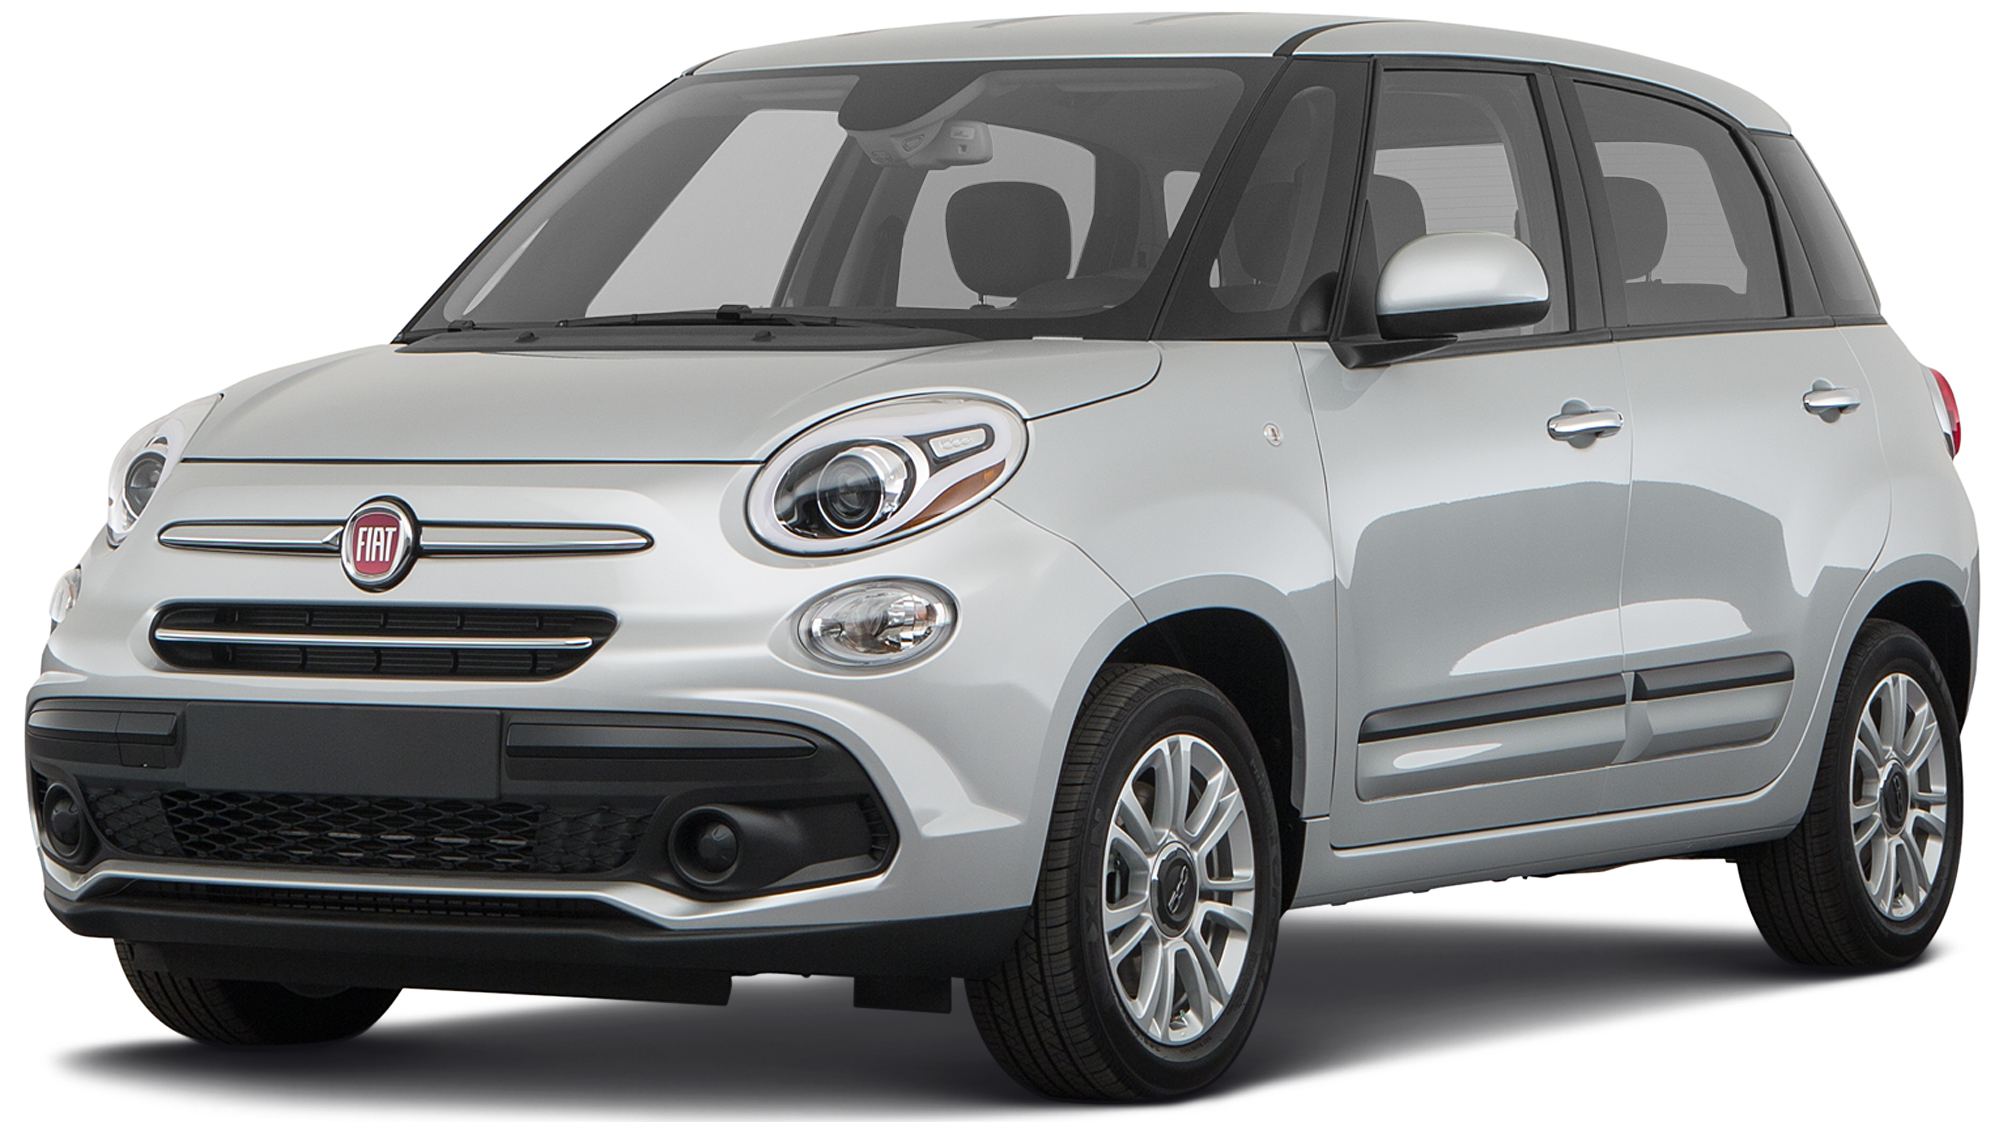 39 The 2020 Fiat 500L Price Design And Review